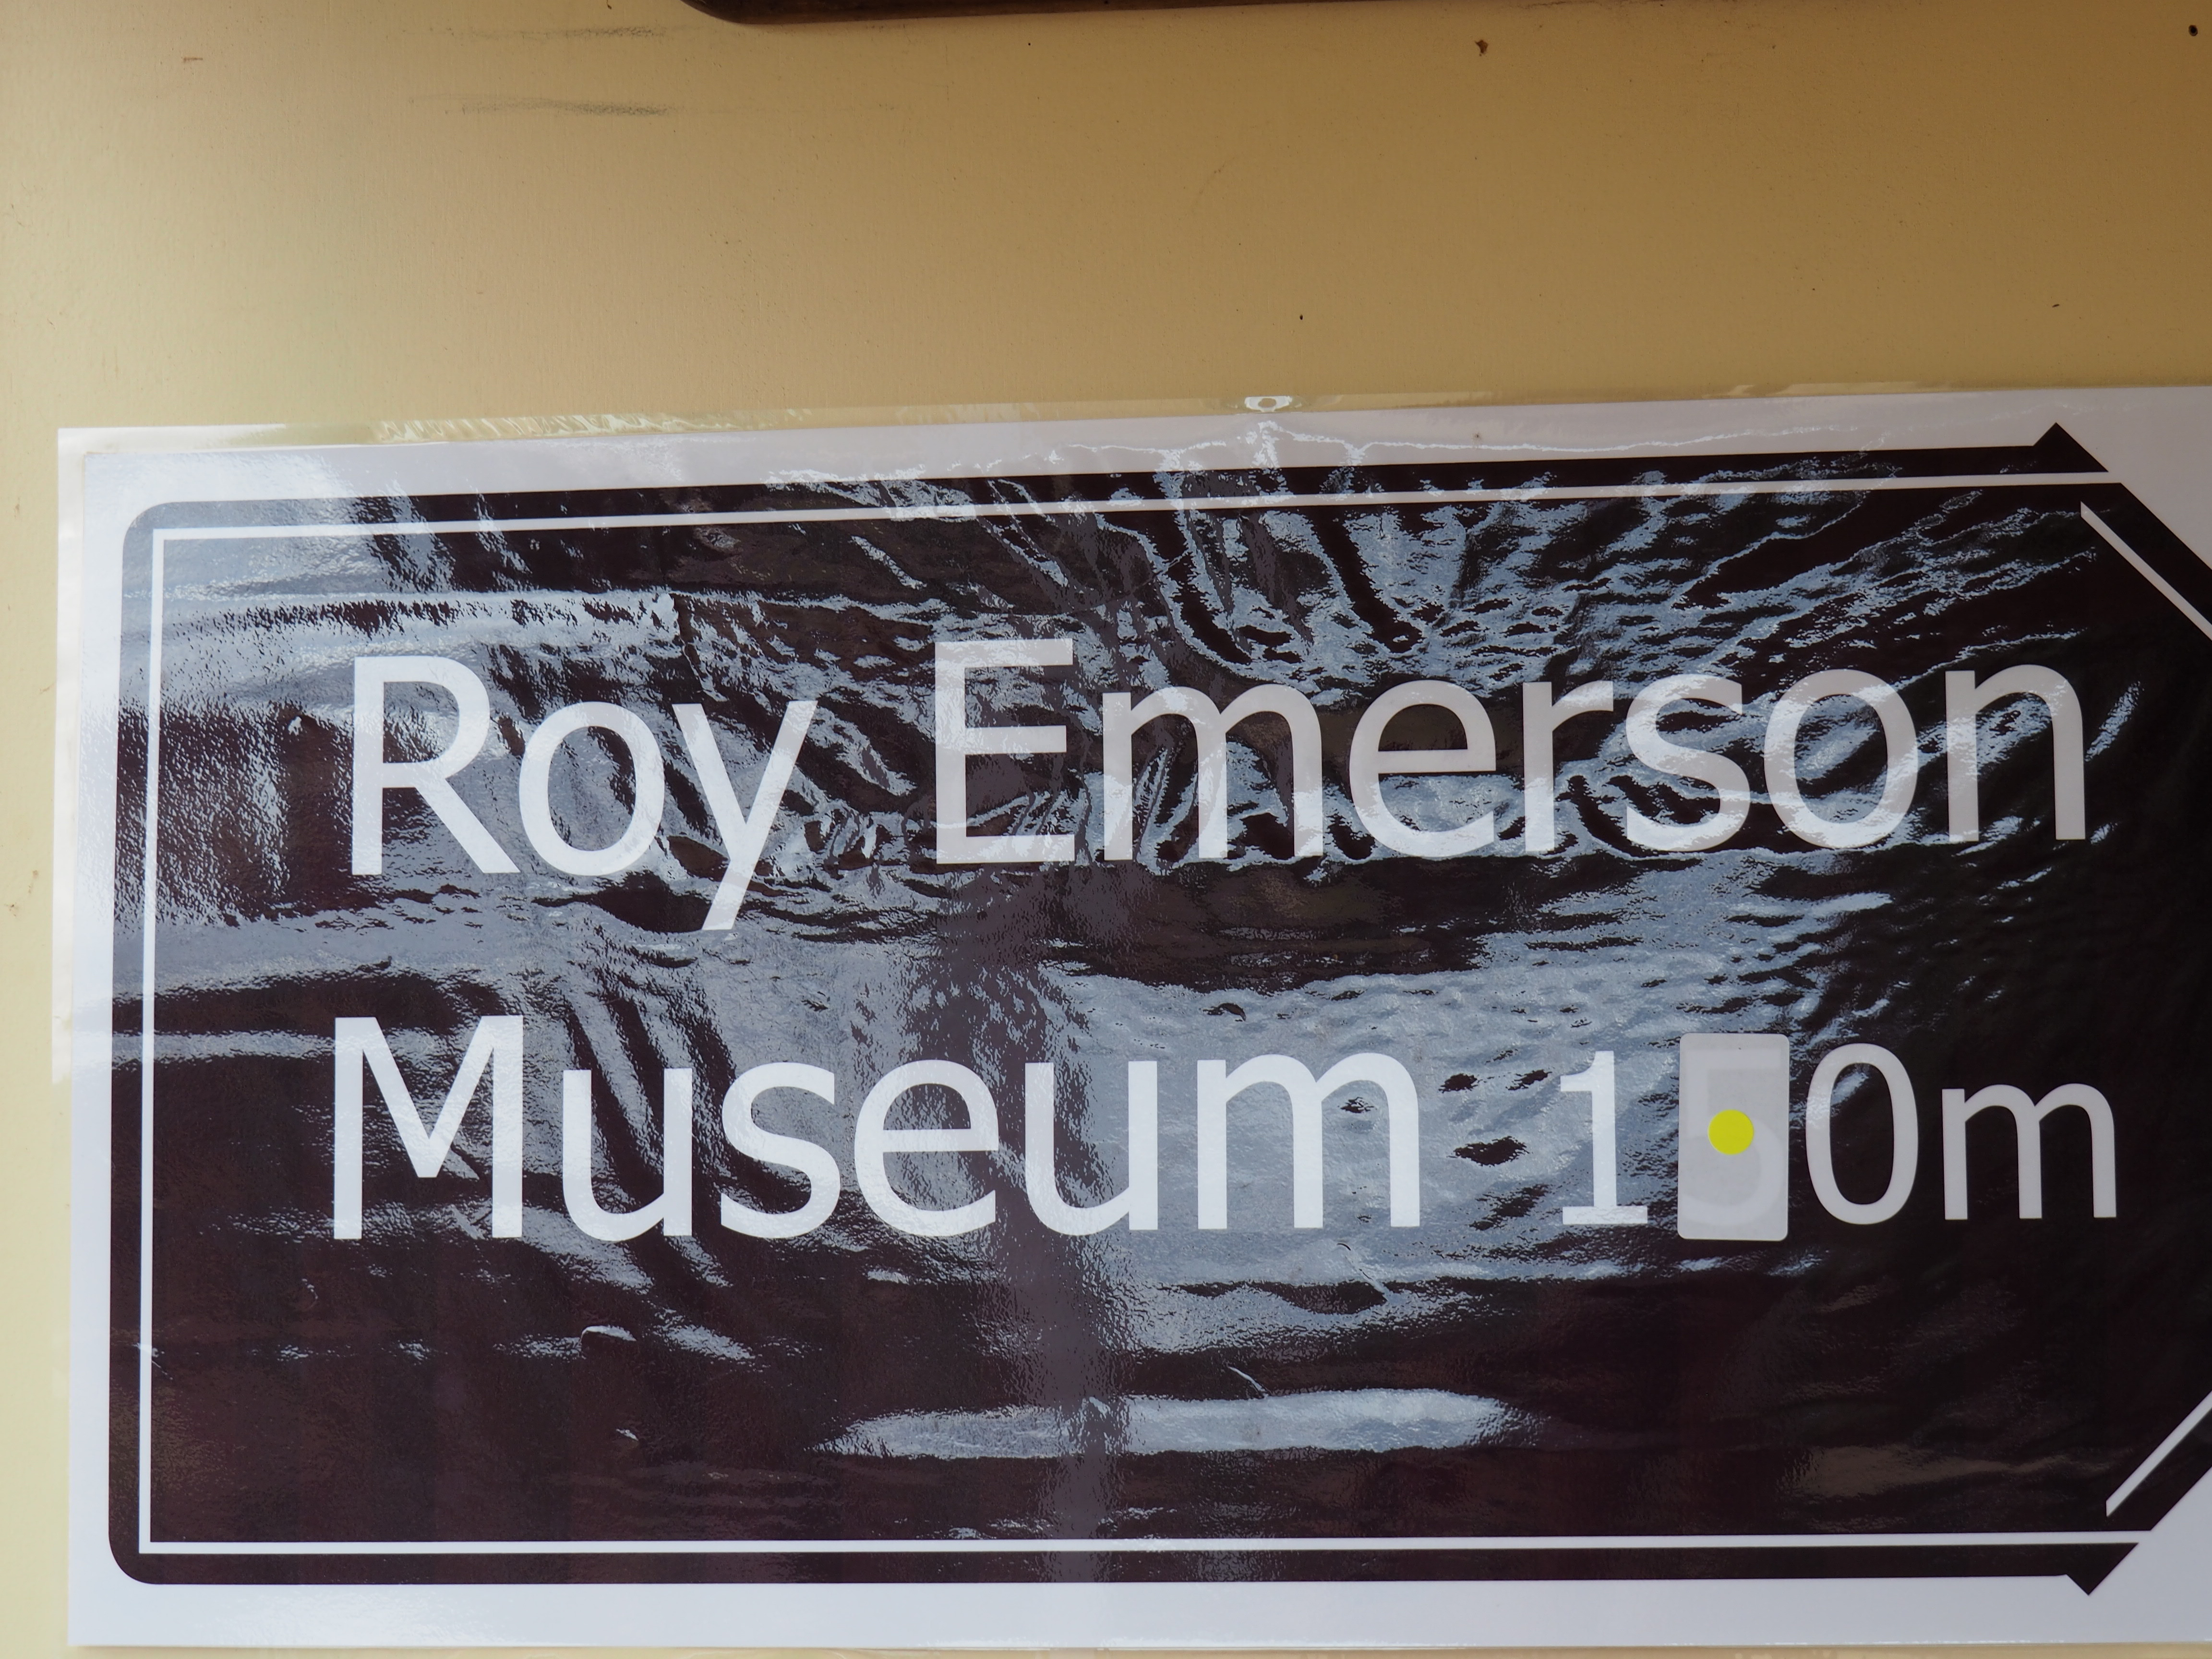 The Roy Emerson Museum Brisbane